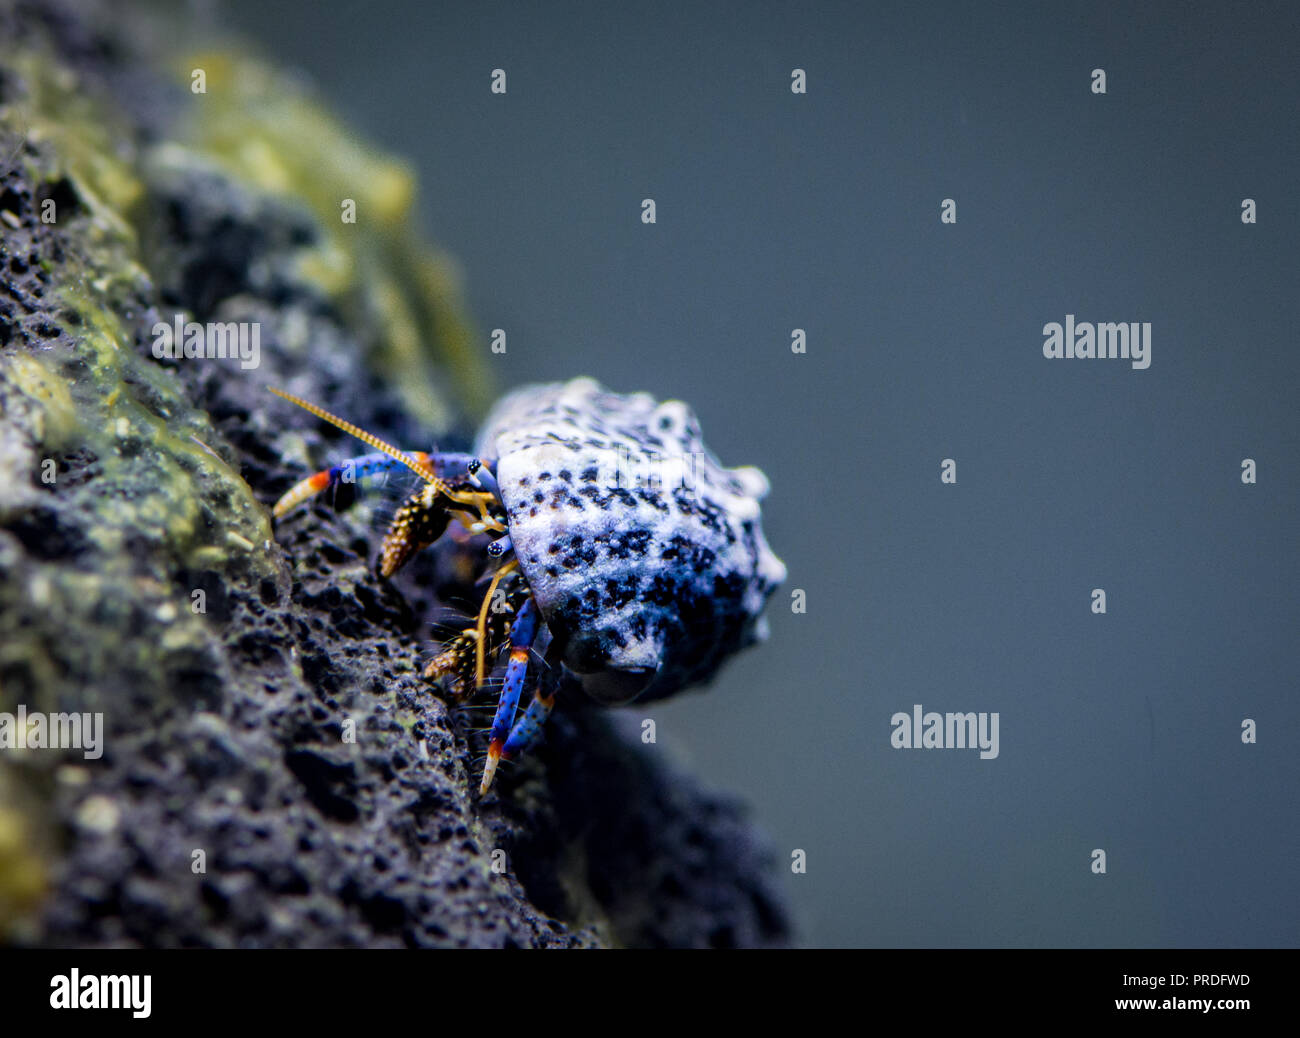 Hermit crab in brackish tank - Stock Image